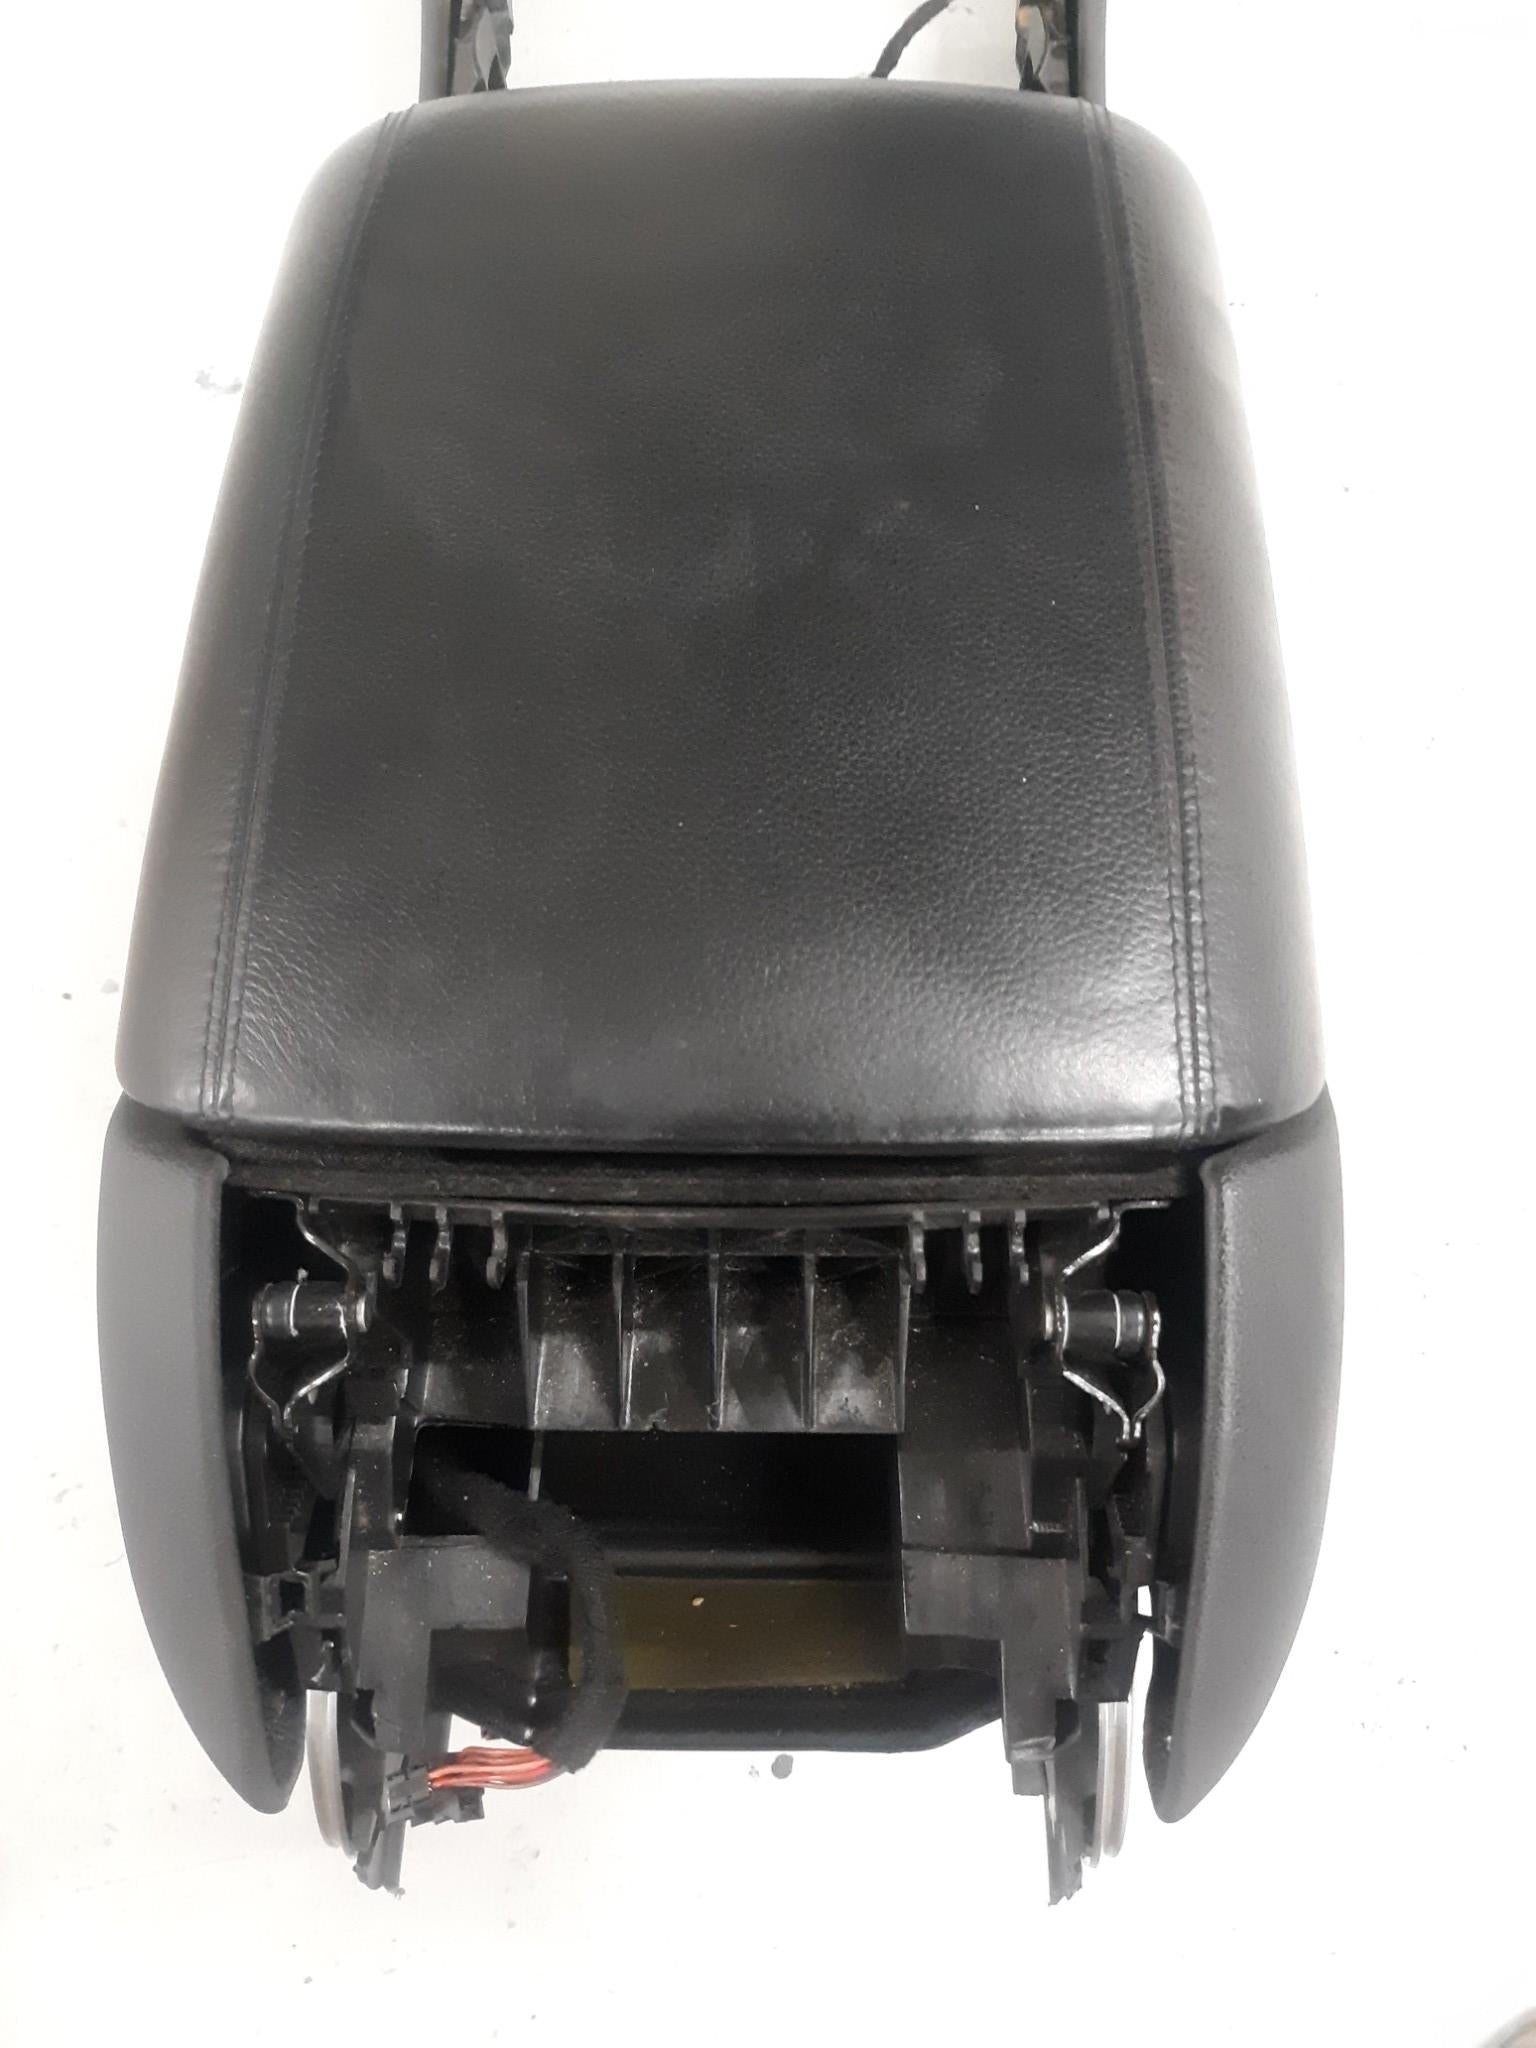 06-12 MERCEDES W251 R350 ML320 FRONT CENTER CONSOLE LEATHER ARM REST STORAGE OEM